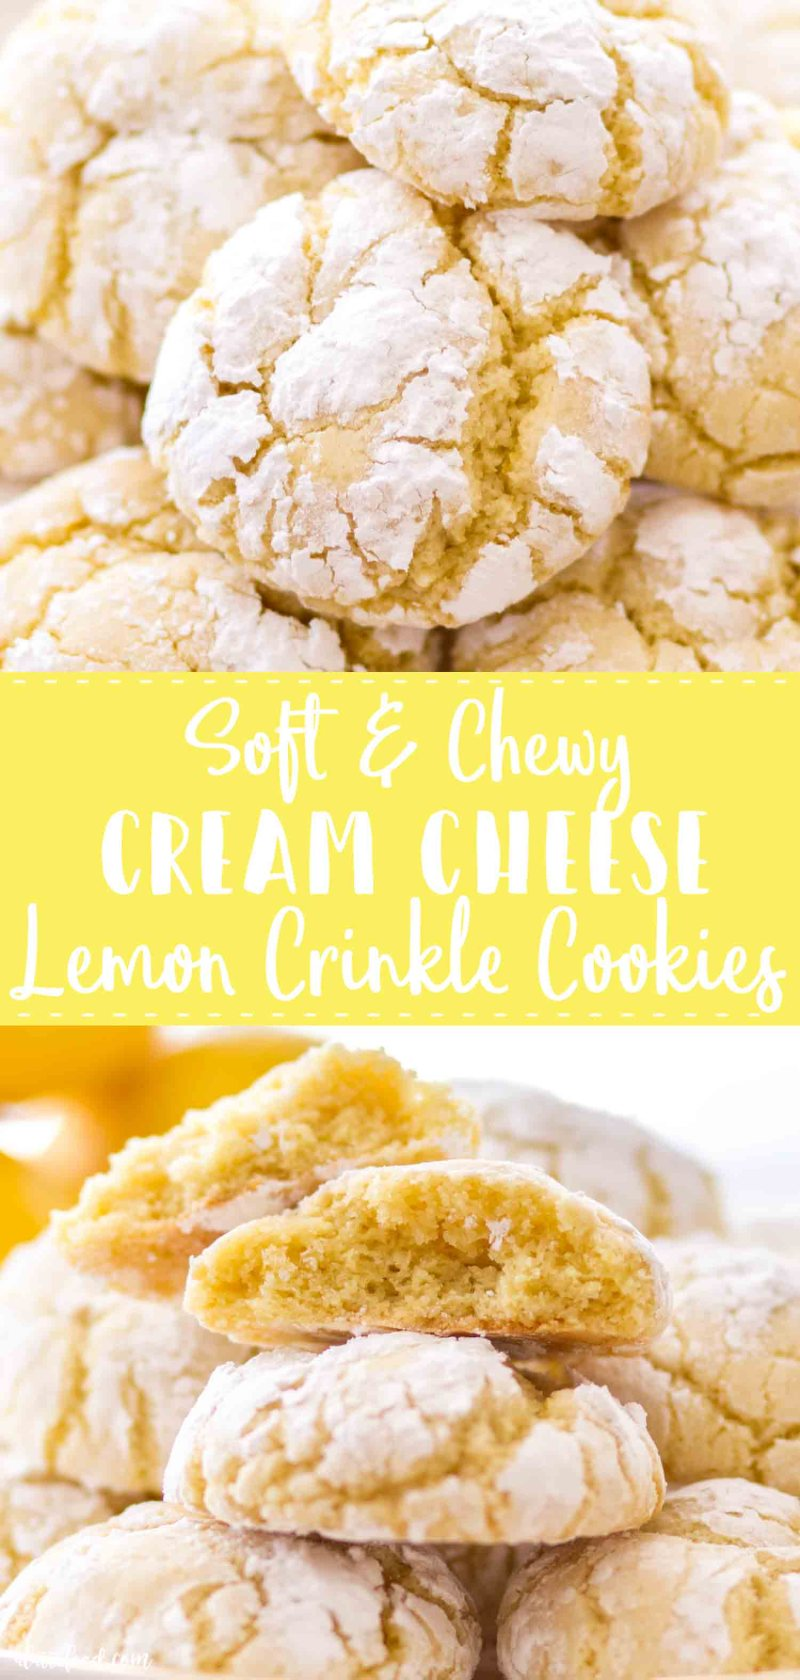 Soft and Chewy Cream Cheese Lemon Crinkle Cookies (aka lemon crinkle cookies with cream cheese) make the best spring dessert!